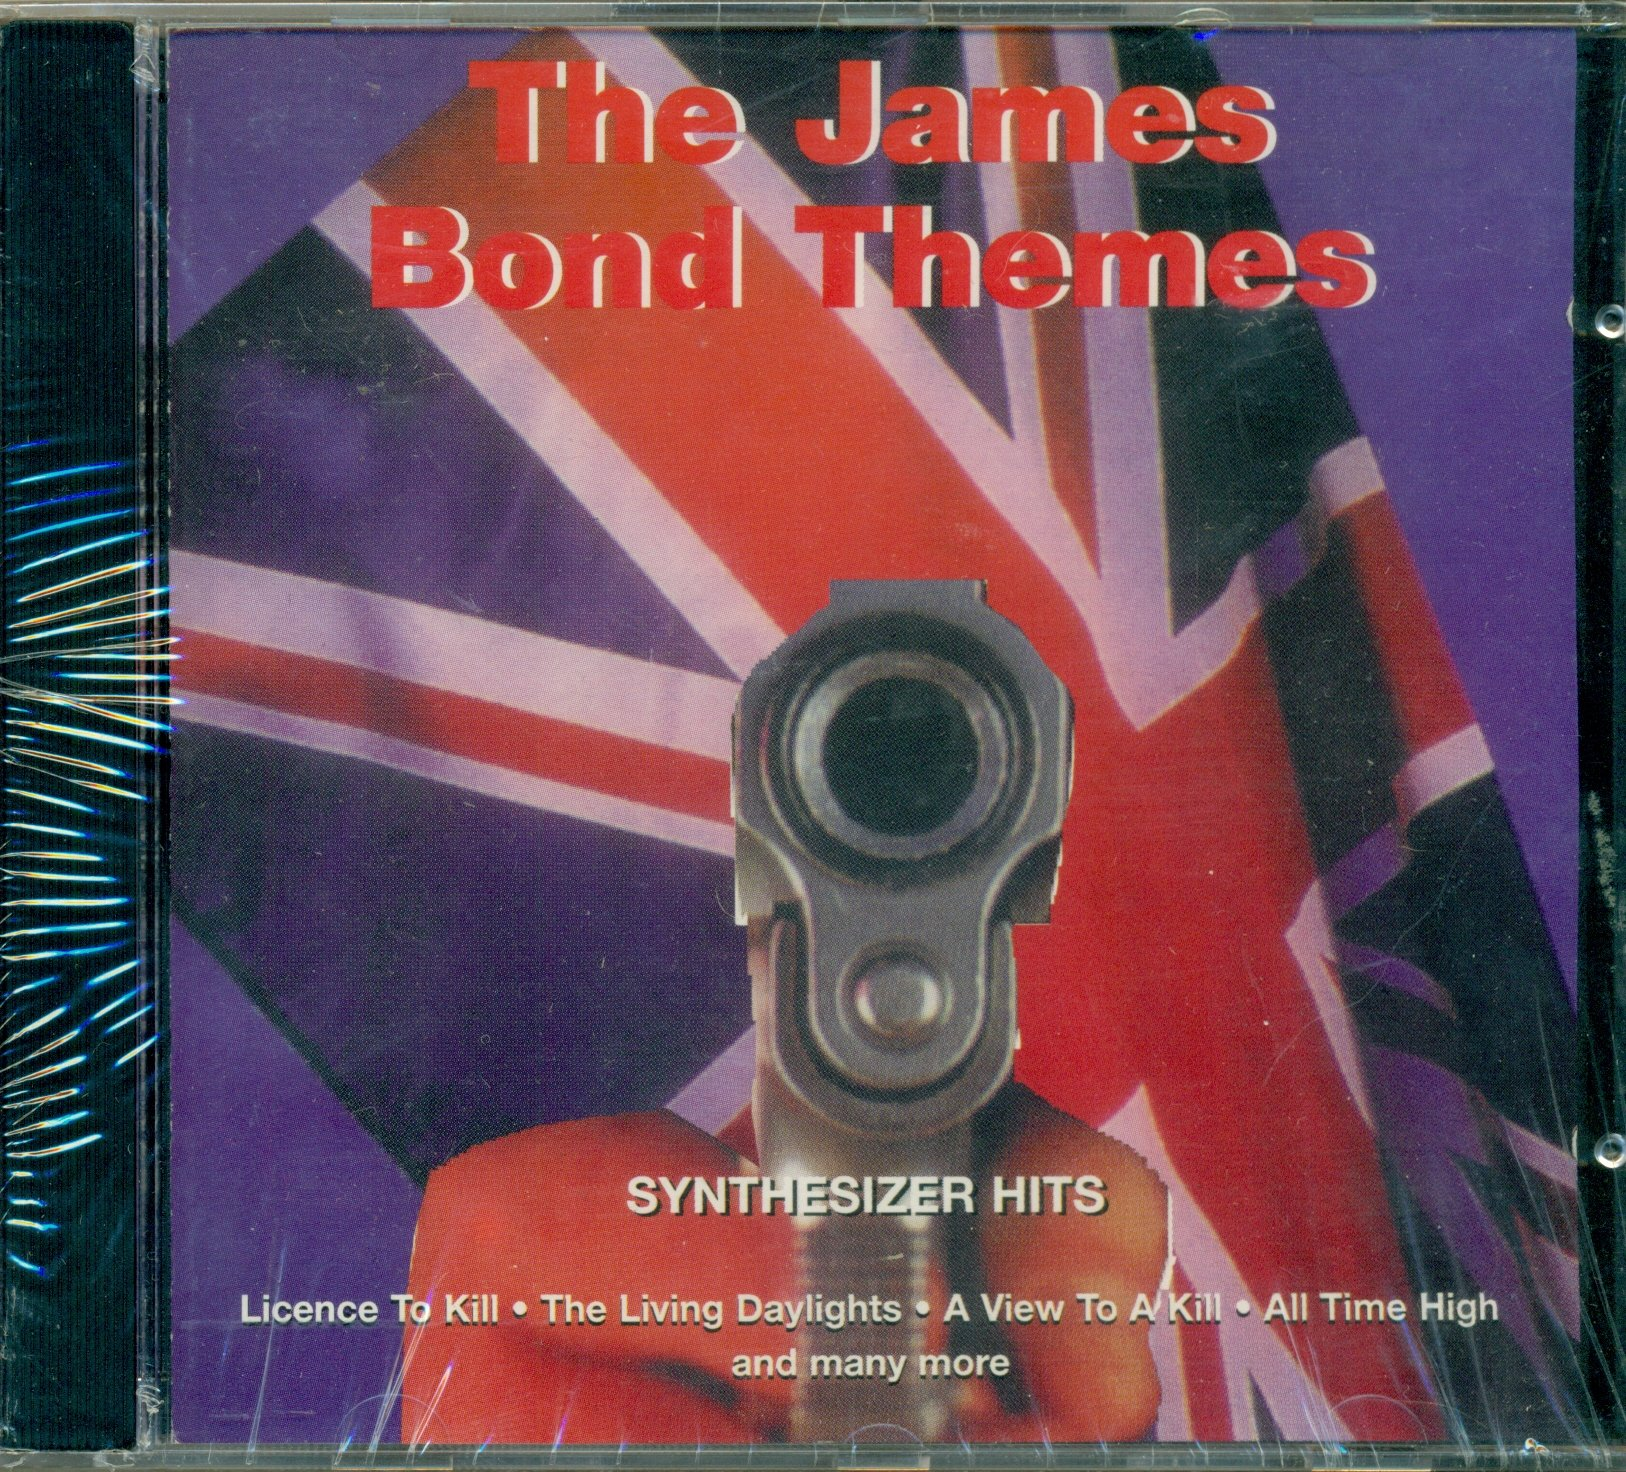 The James Bond Themes - Synthesizer Hits by Musketeer